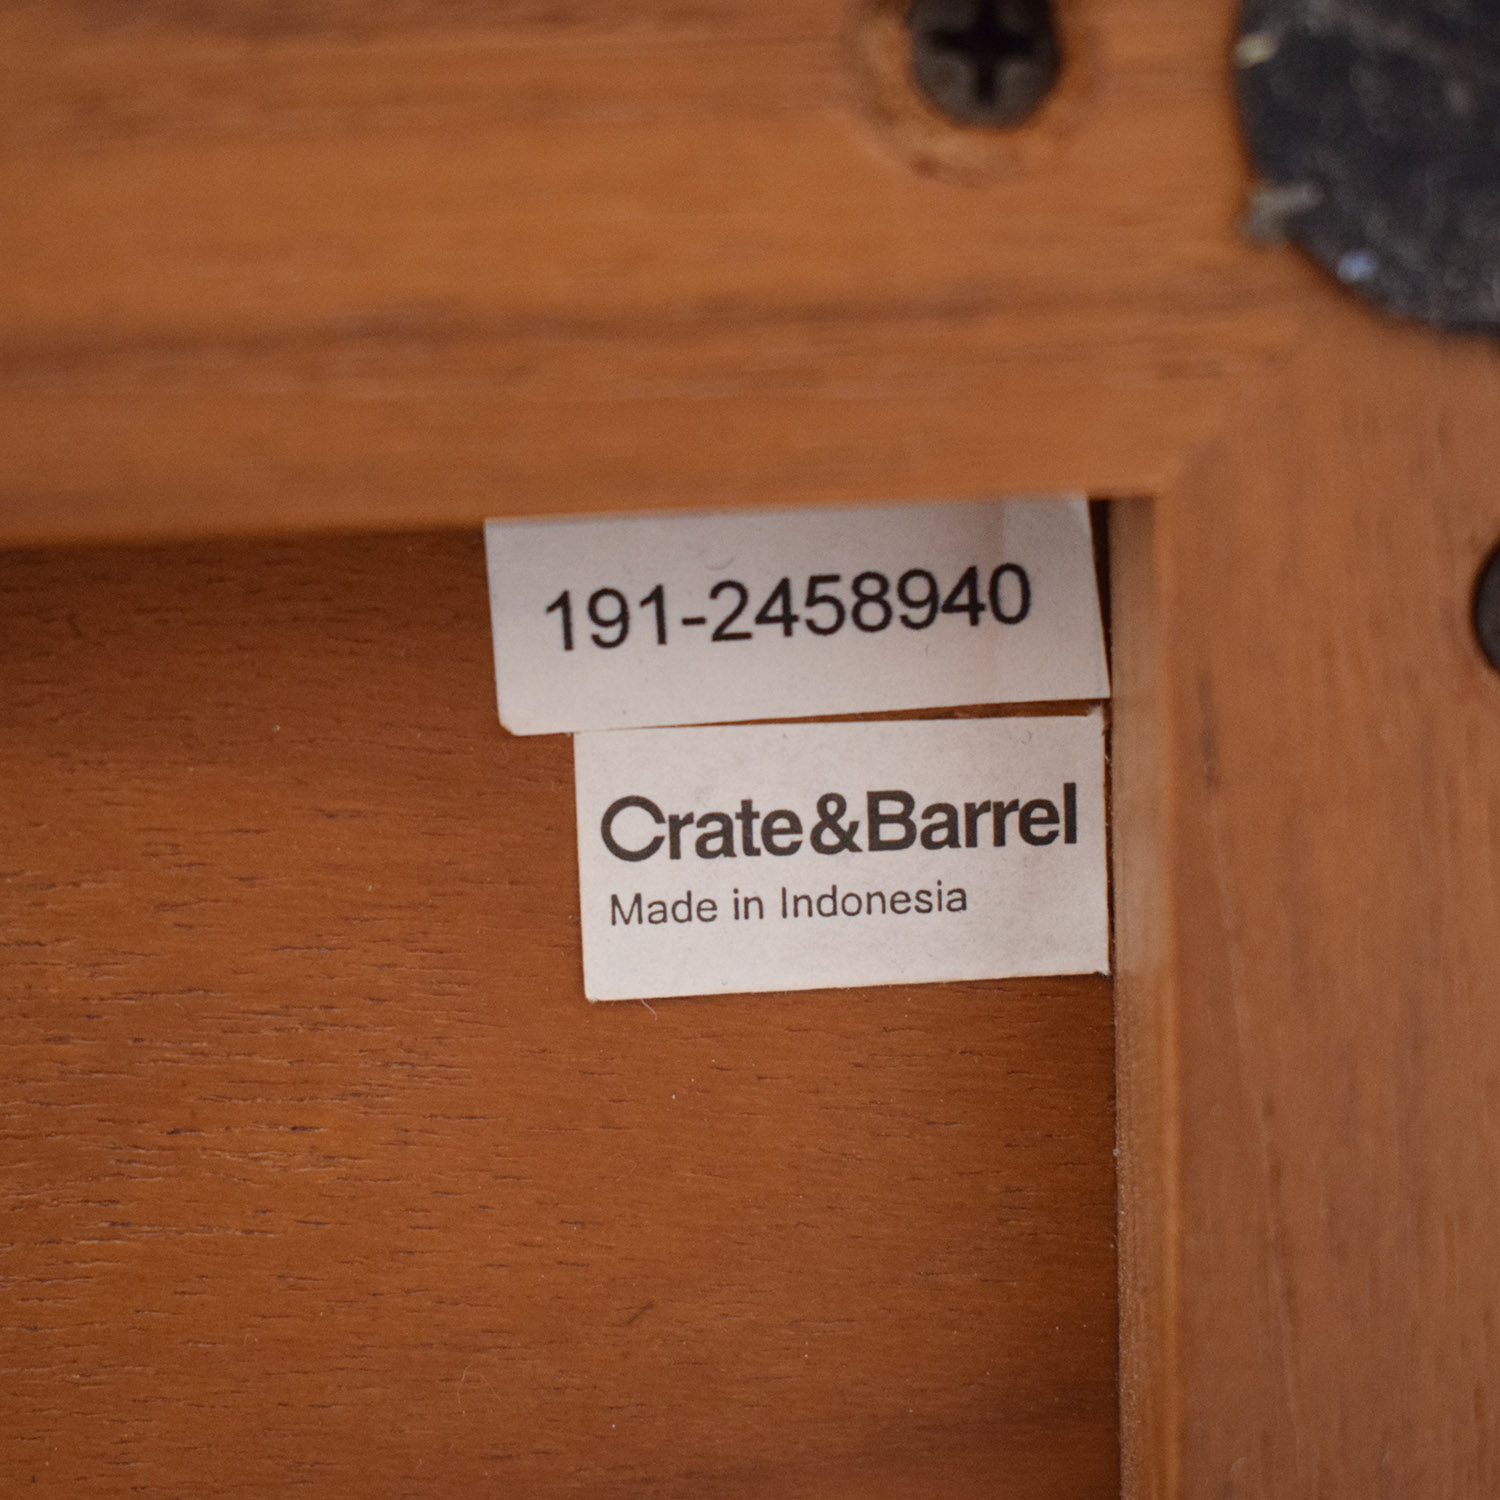 buy Crate & Barrel Aspect Modular Storage Unit Crate & Barrel